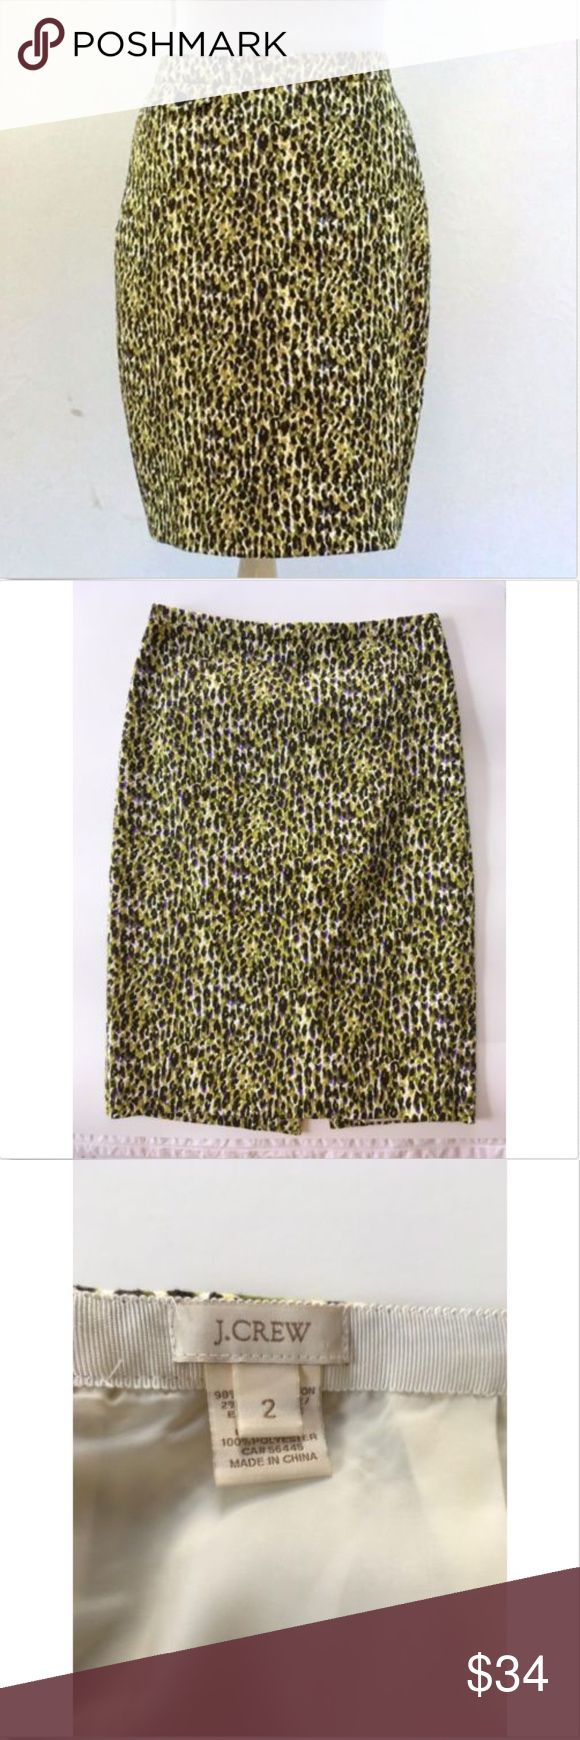 "J Crew Leopard Pencil Skirt - Abstract pattern EUC This is the classic No. 2 Pencil Skirt from J. Crew - in a size 2.  Fun ""abstract leopard"" pattern features greens/purples/browns Back zip. Back slit at hem for easy movement Fully lined  Measurements laying flat: Waist:  14.25"" across Length: 23.75""  Like new! J. Crew Skirts Pencil"